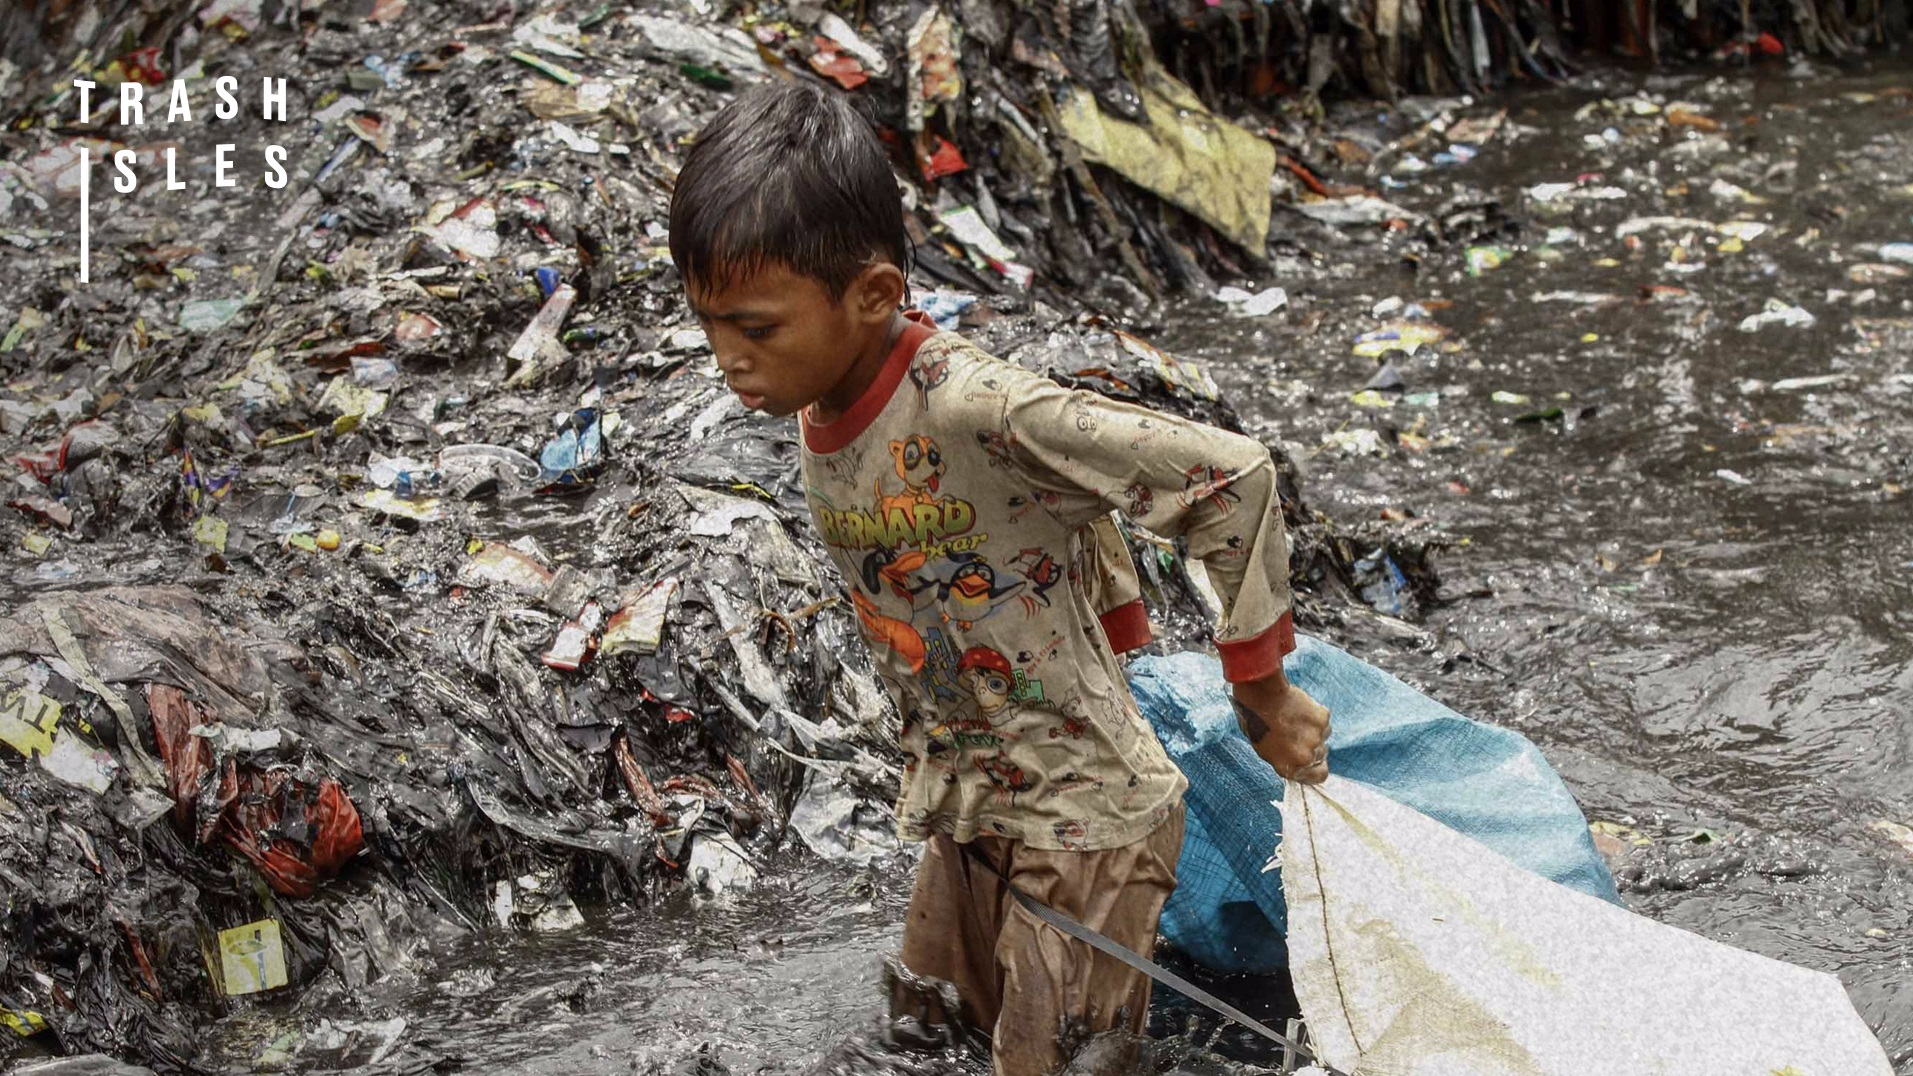 Sixty Percent Of All Plastic Pollution In Our Oceans Is Caused By Just Five Countries